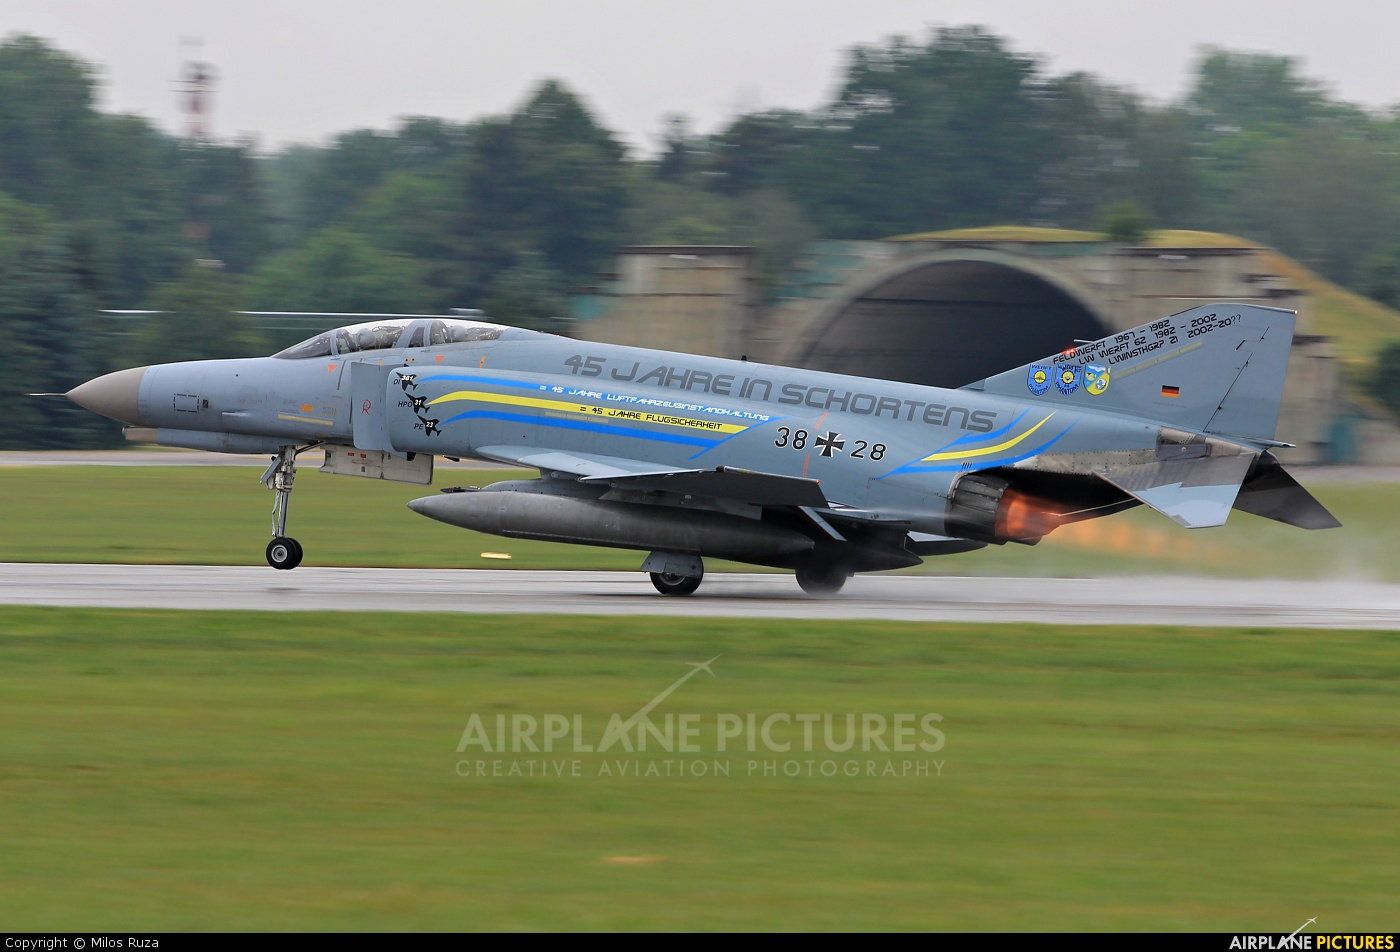 Germany - Air Force 38+28 aircraft at Pardubice